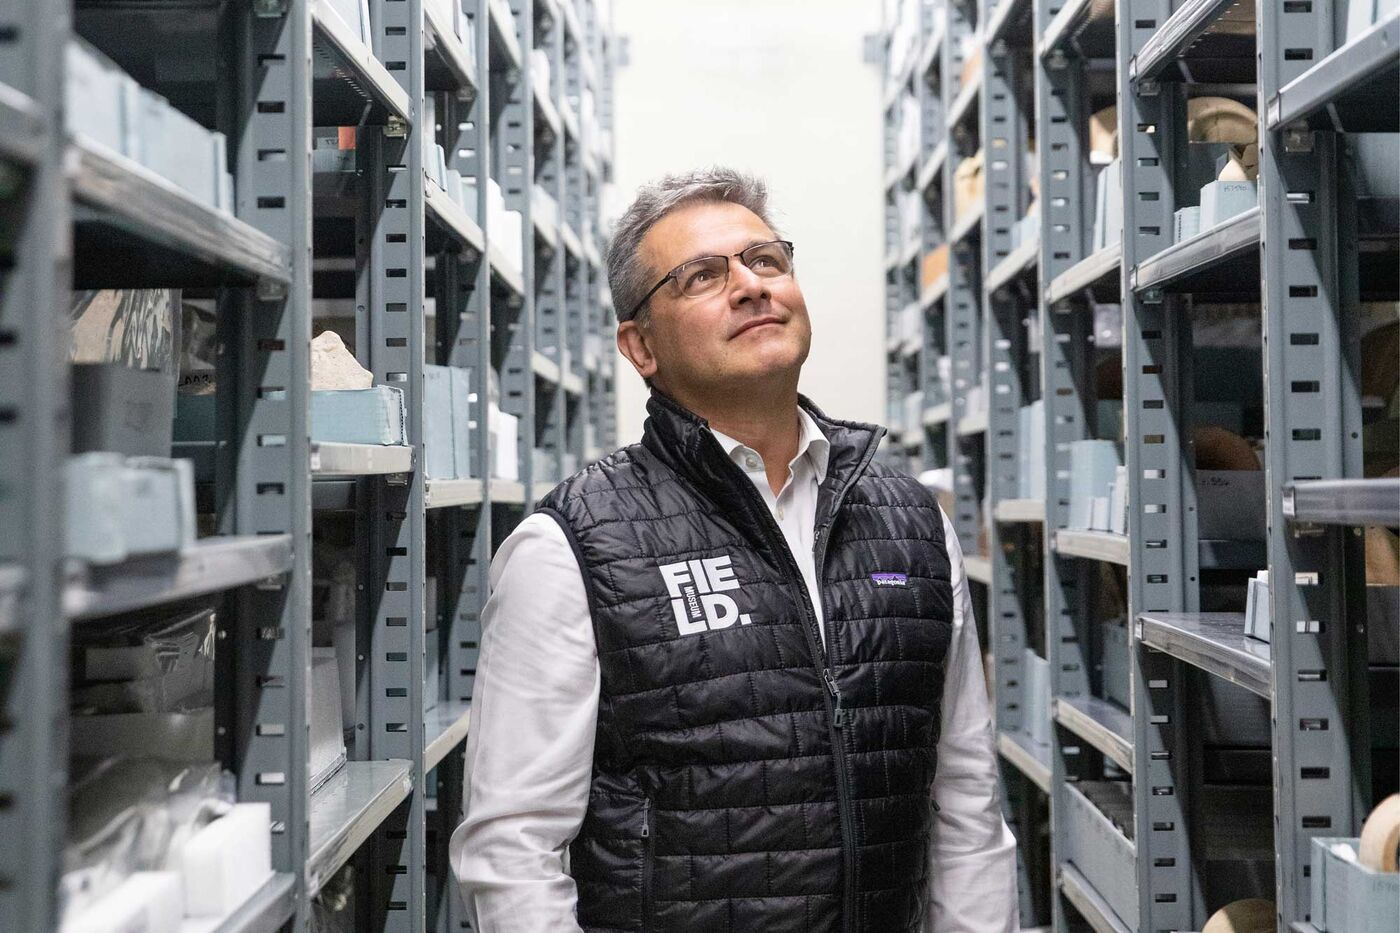 Julian Siggers, wearing a Field Museum vest, stands between two tall shelves that hold museum collections.